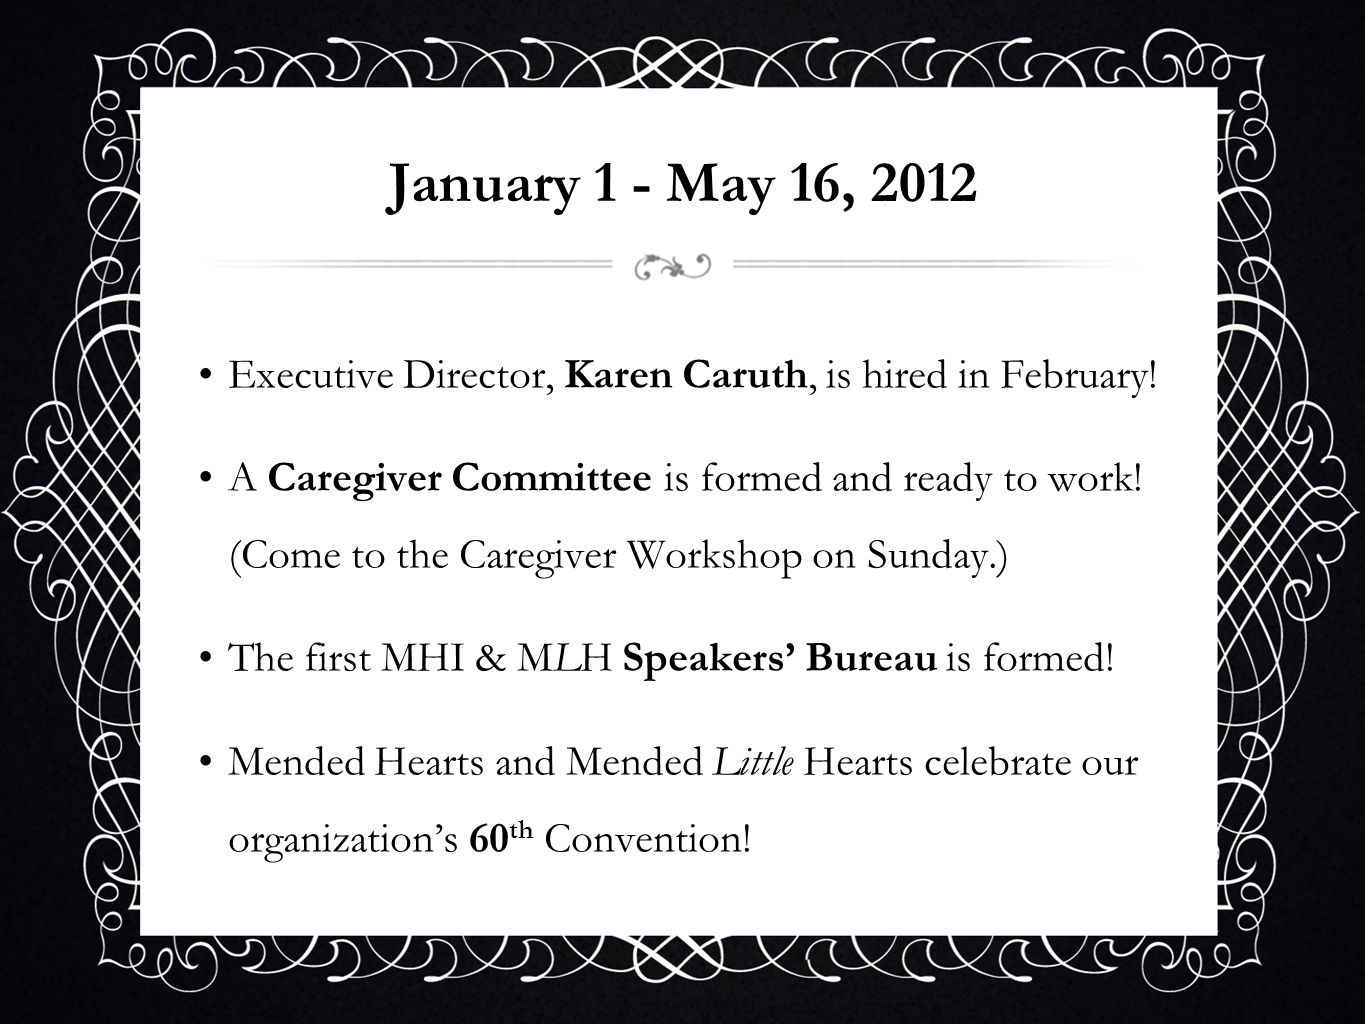 January 1 - May 16, 2012Executive Director, Karen Caruth, is hired in February!